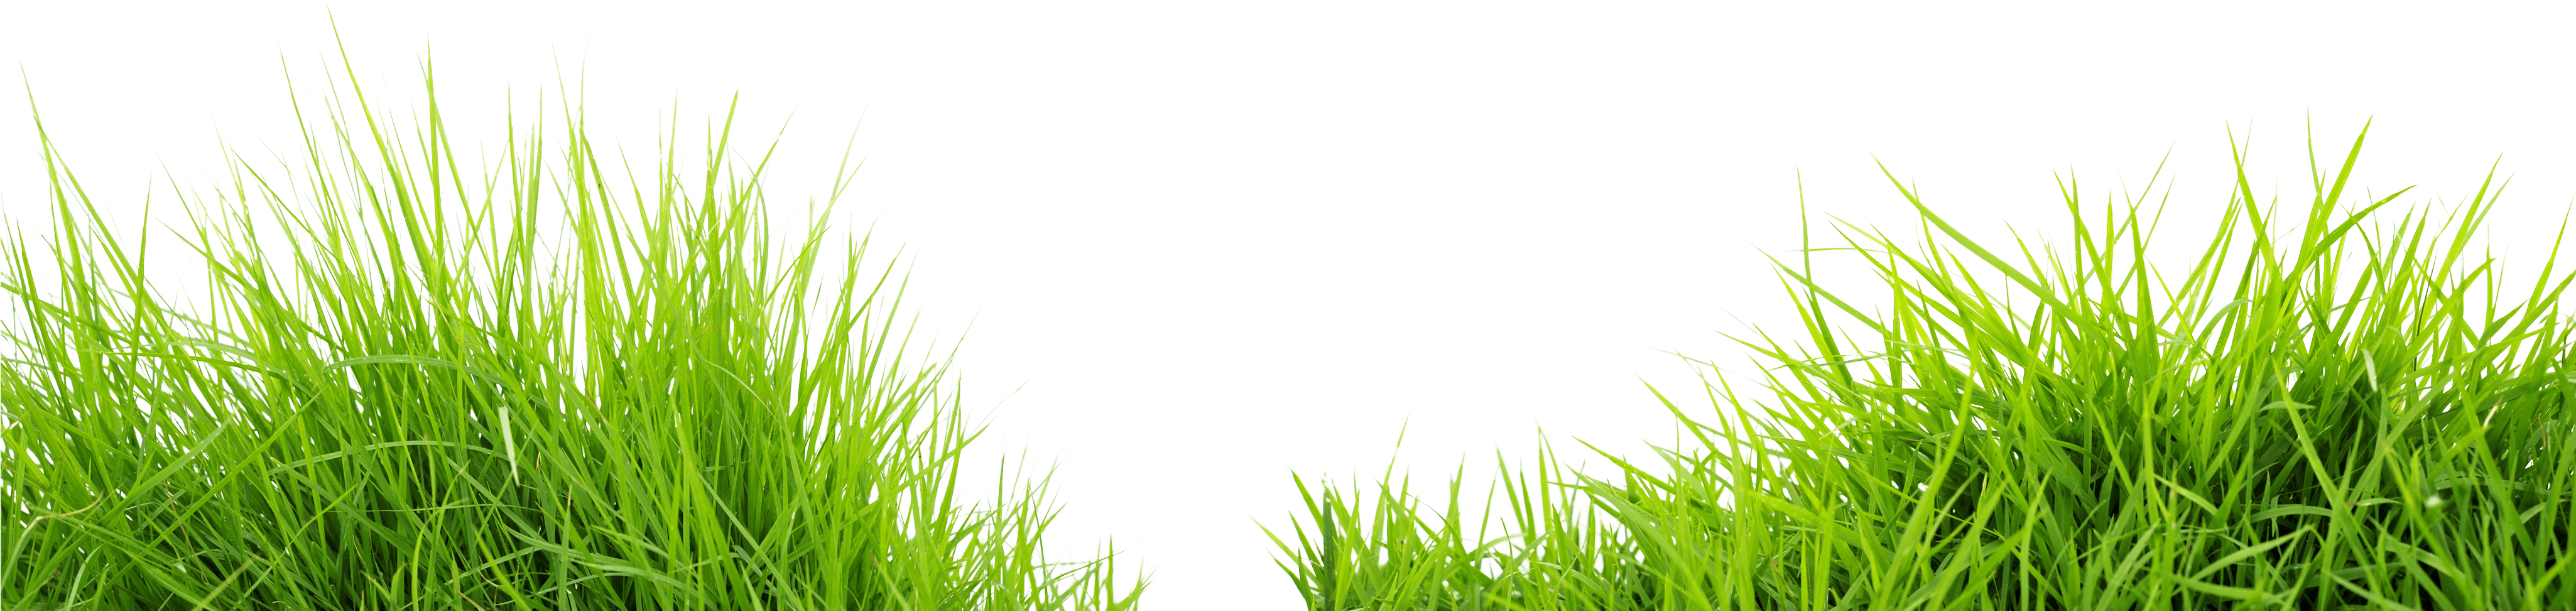 Png images download. Grass transparent pluspng image